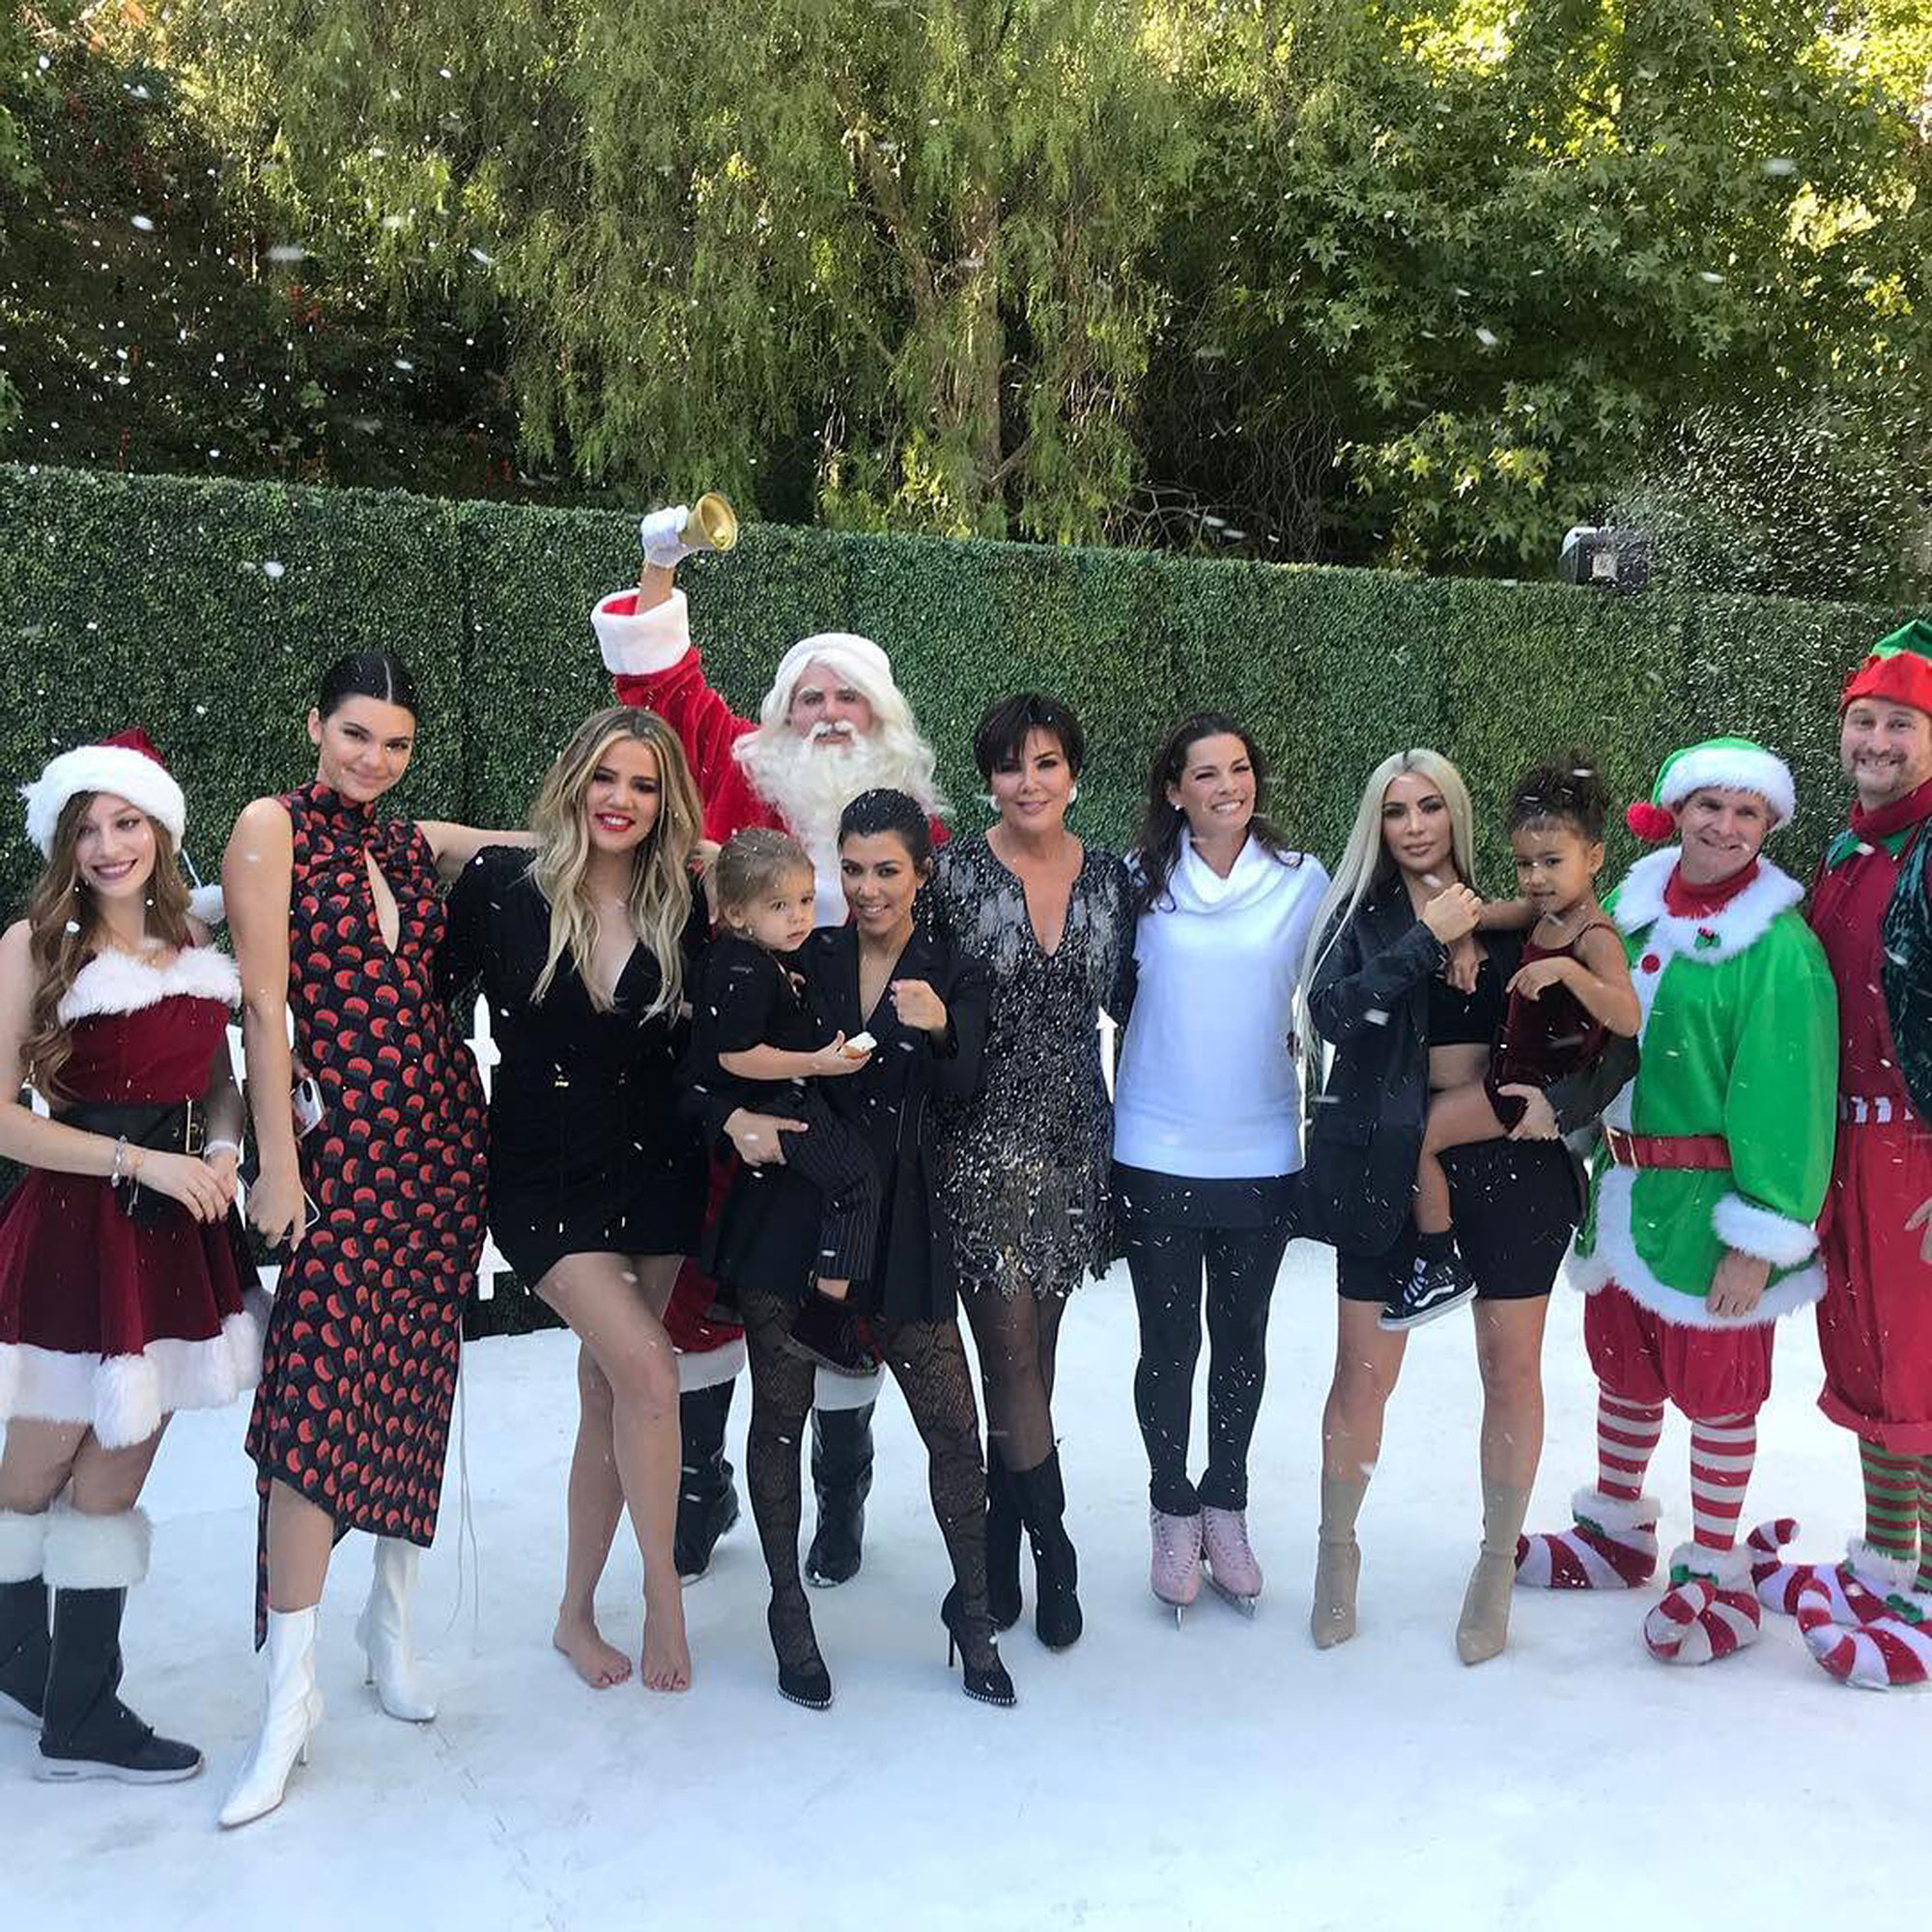 KarJenner Christmas by the Numbers